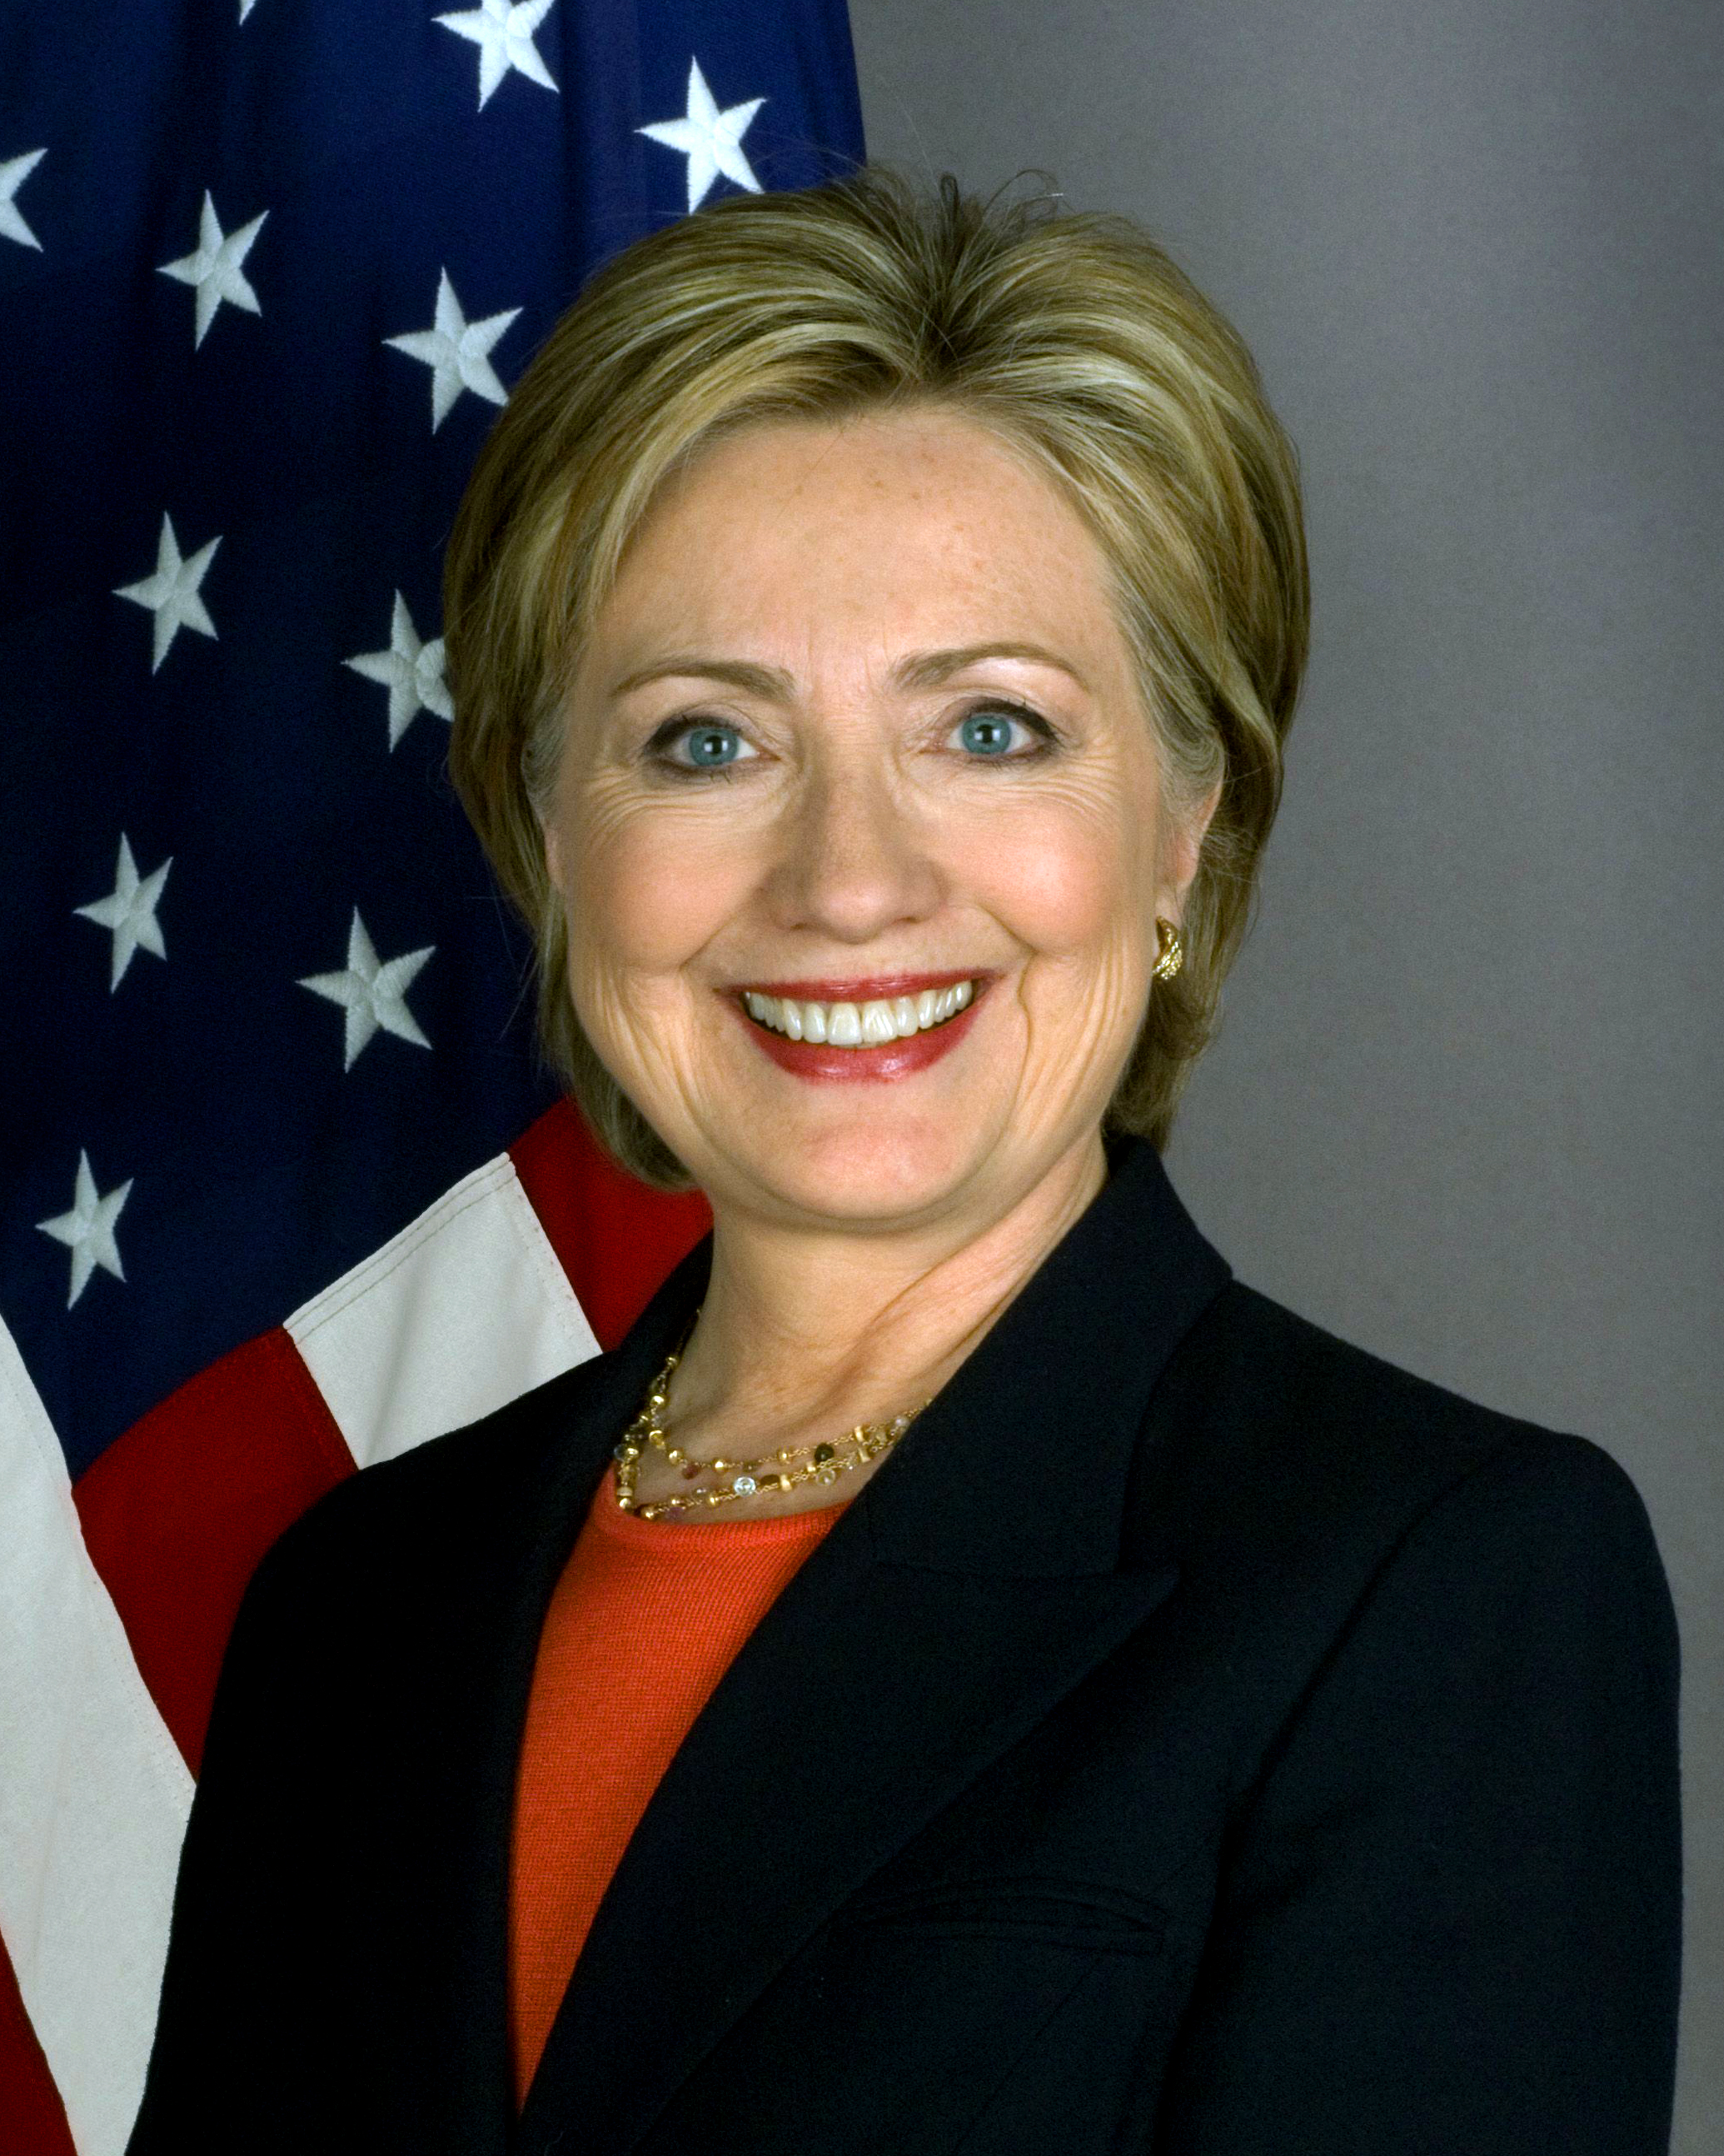 Image result for image of hillary clinton